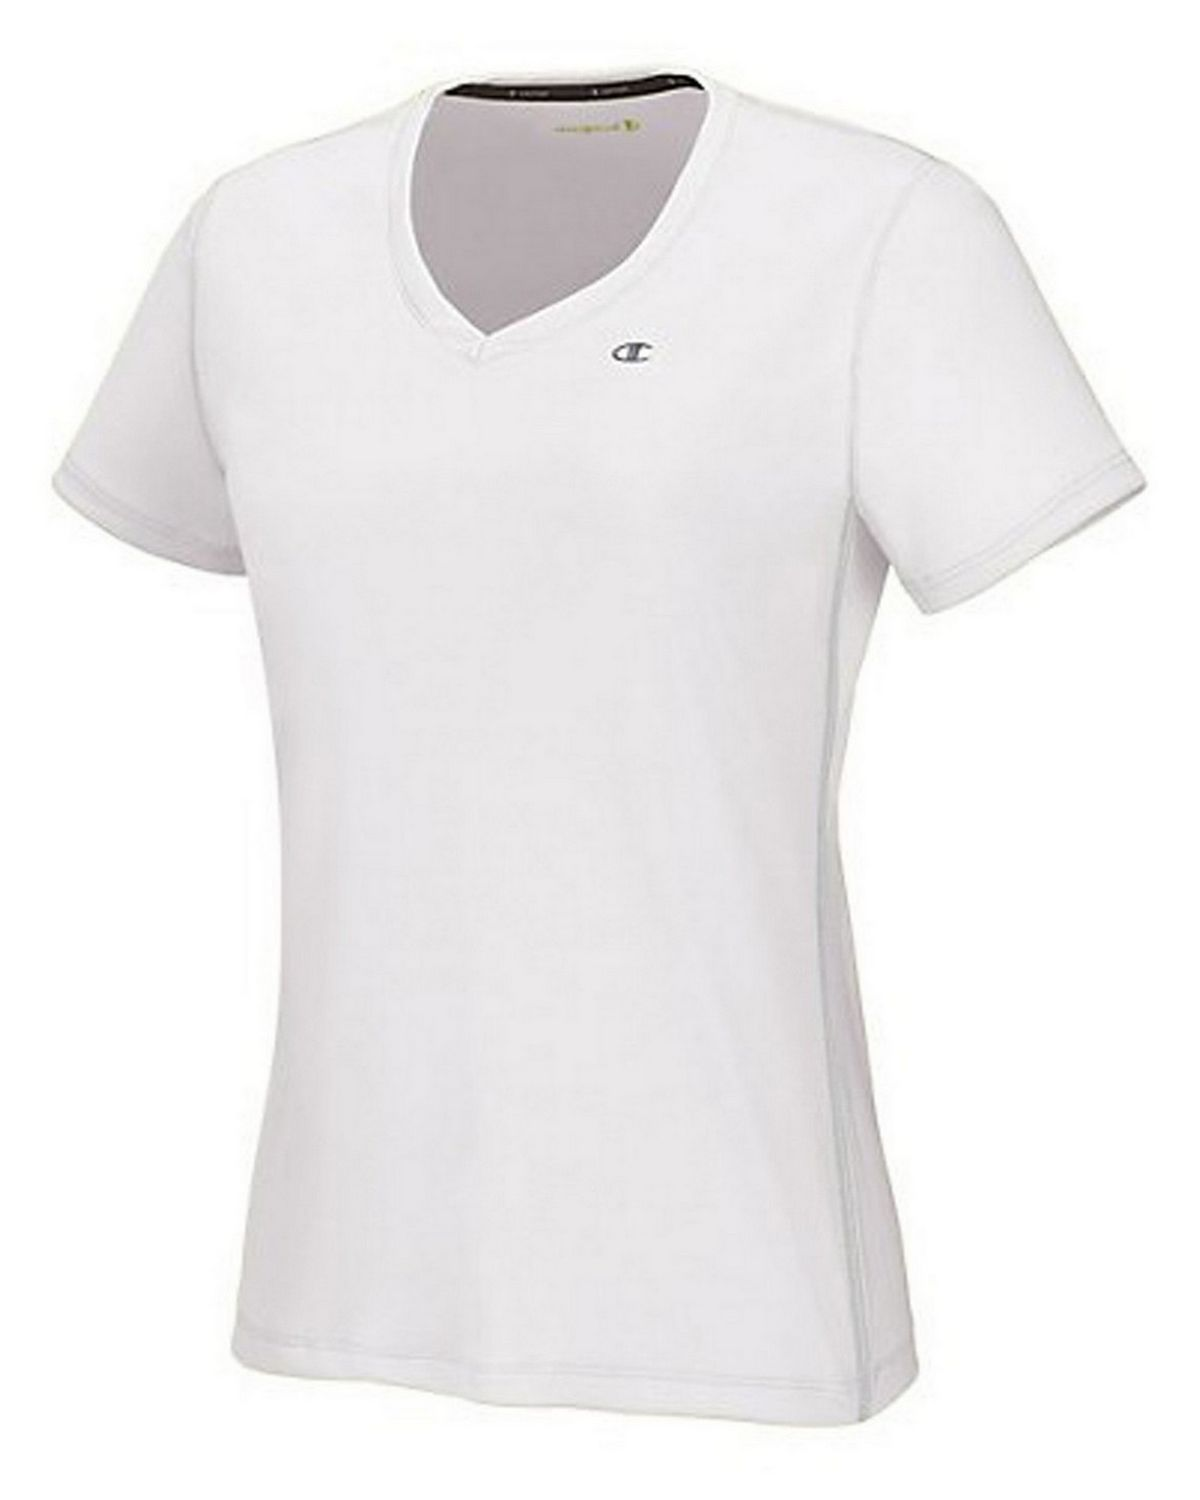 Champion 7664 Vapor PowerTrain Womens Tee - White - S 7664